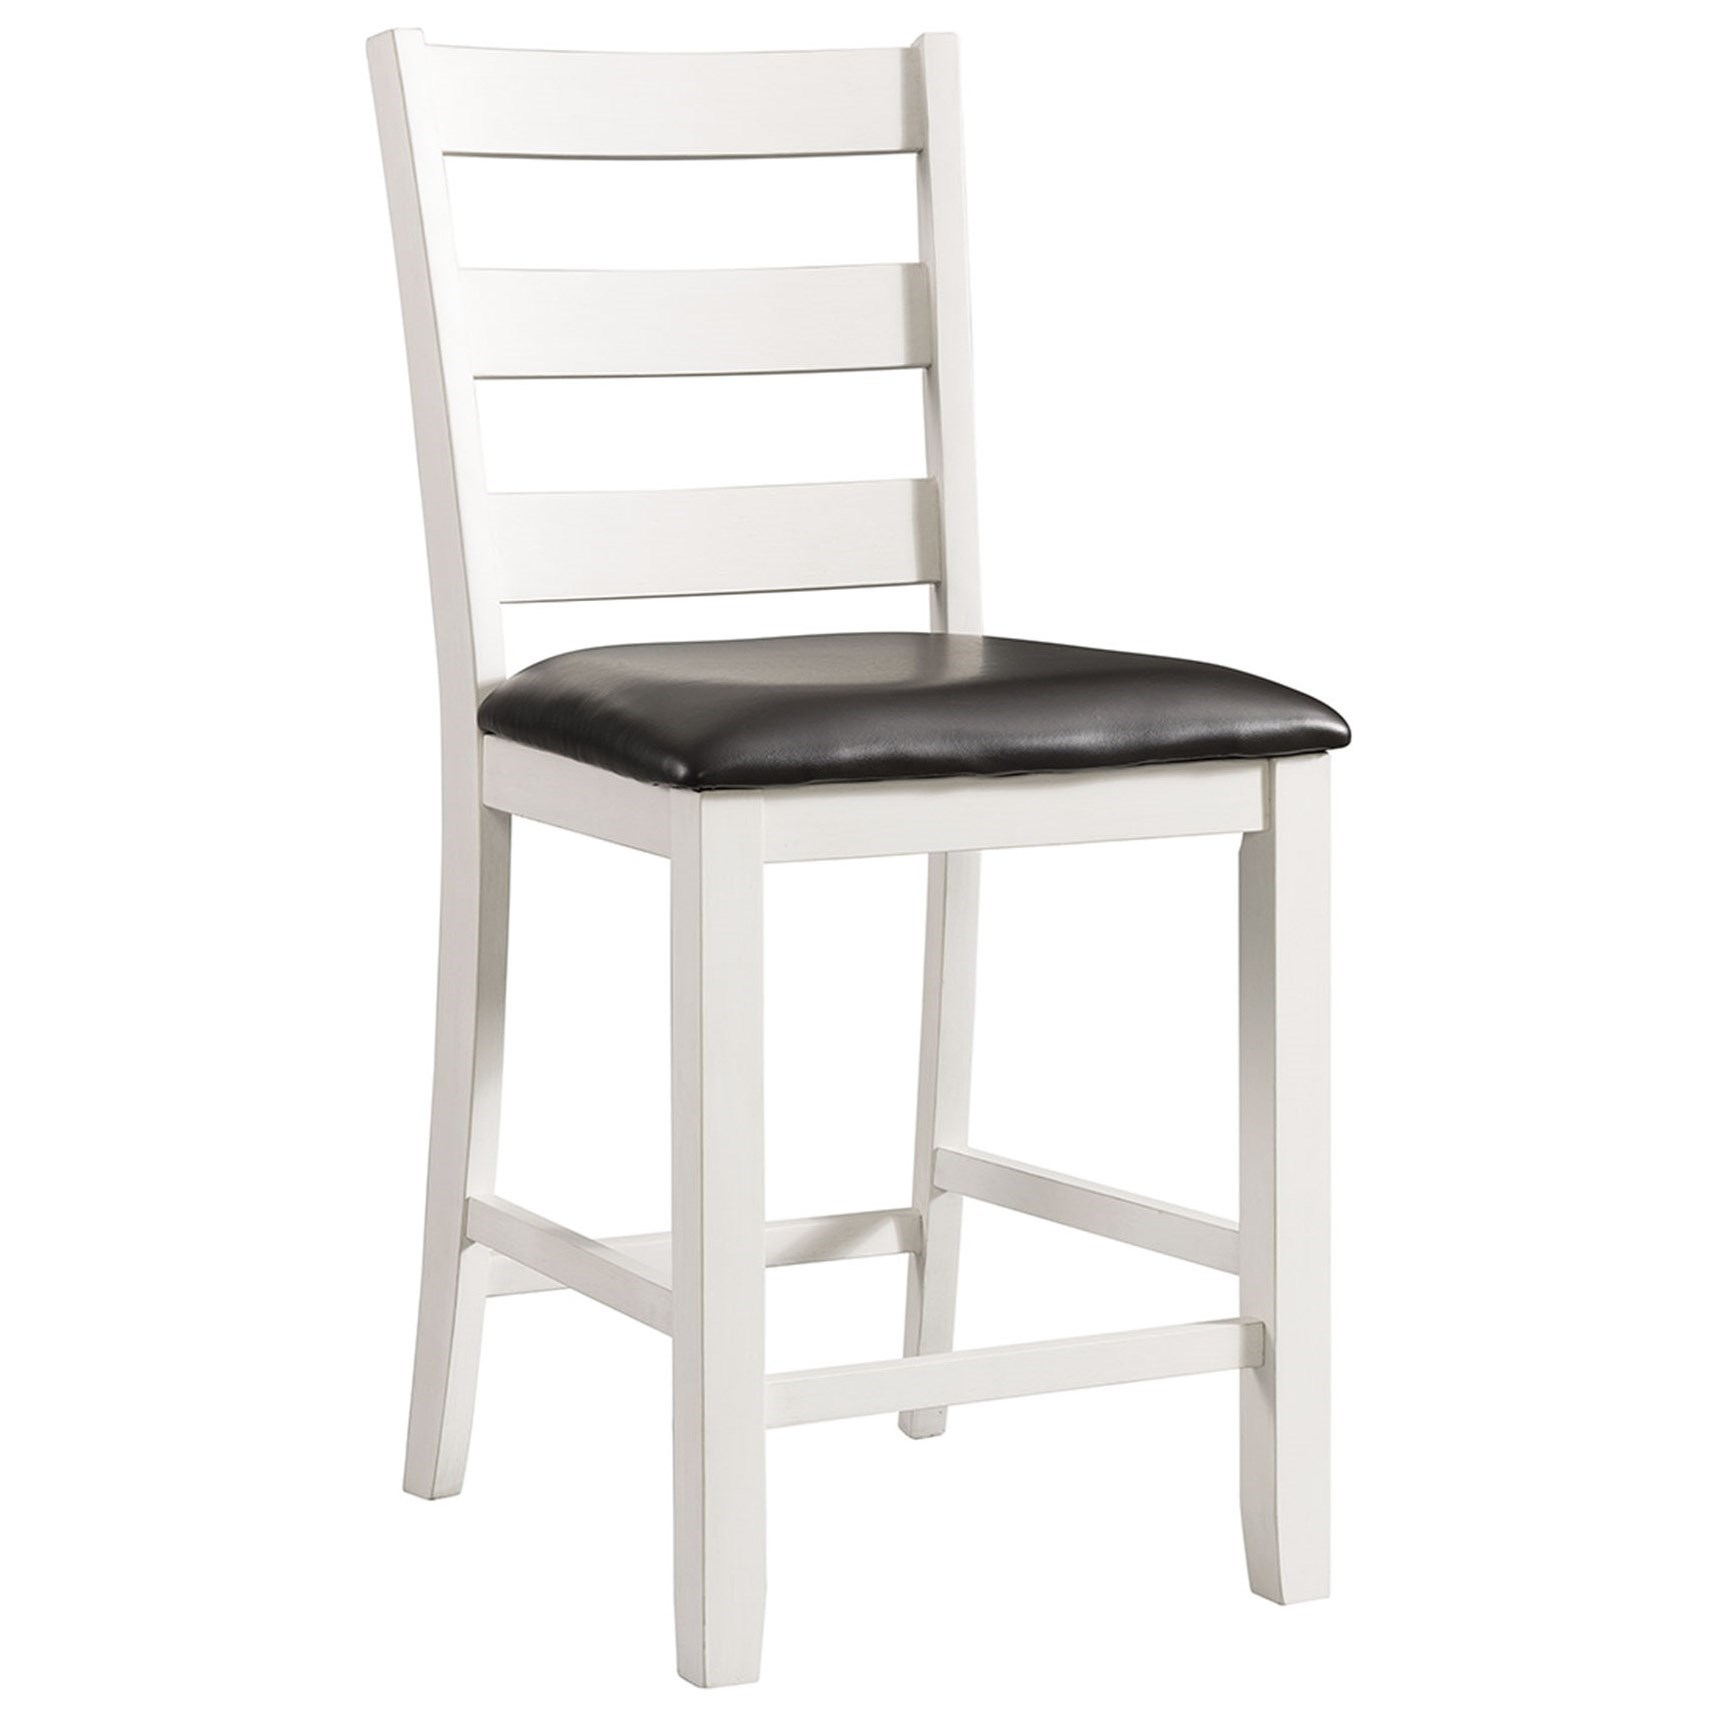 Rosemary Counter Height Side Chair by EFO at EFO Furniture Outlet